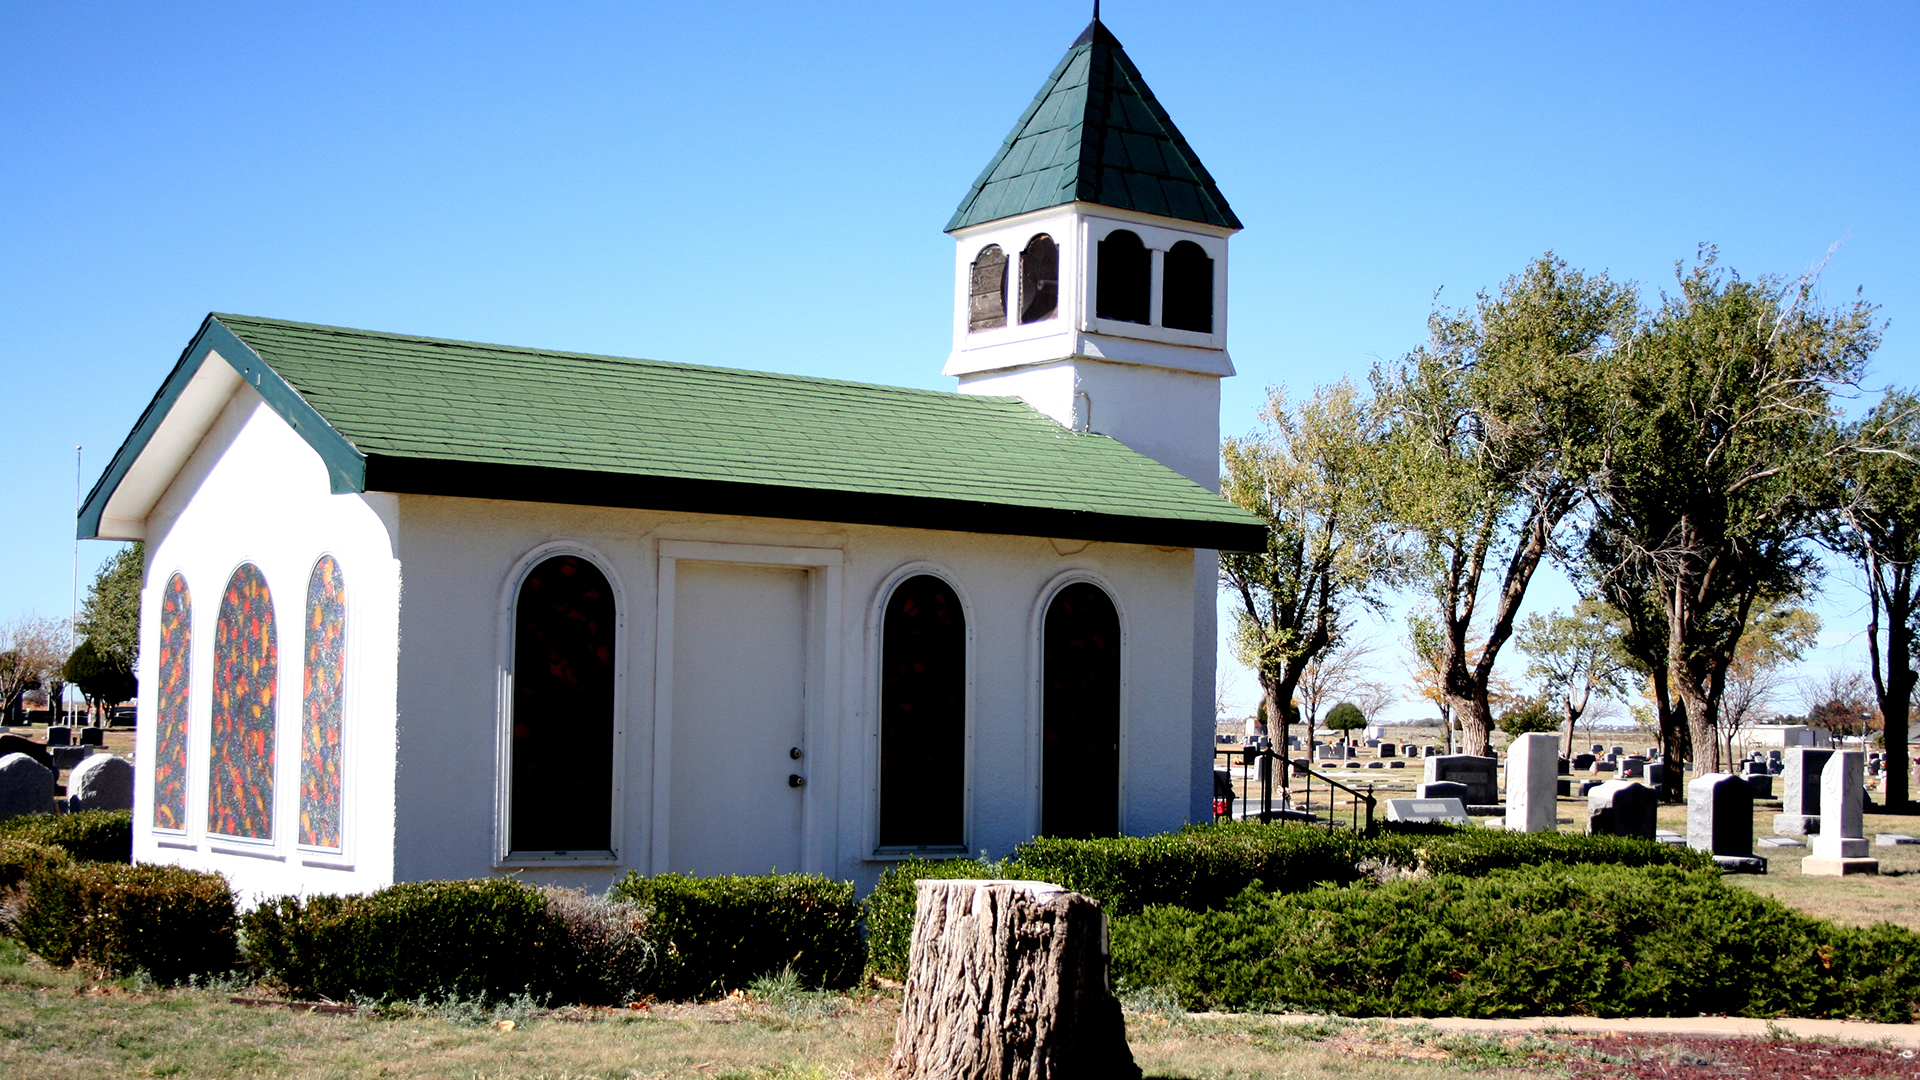 PPHM to lead tour of historic Canyon cemetery